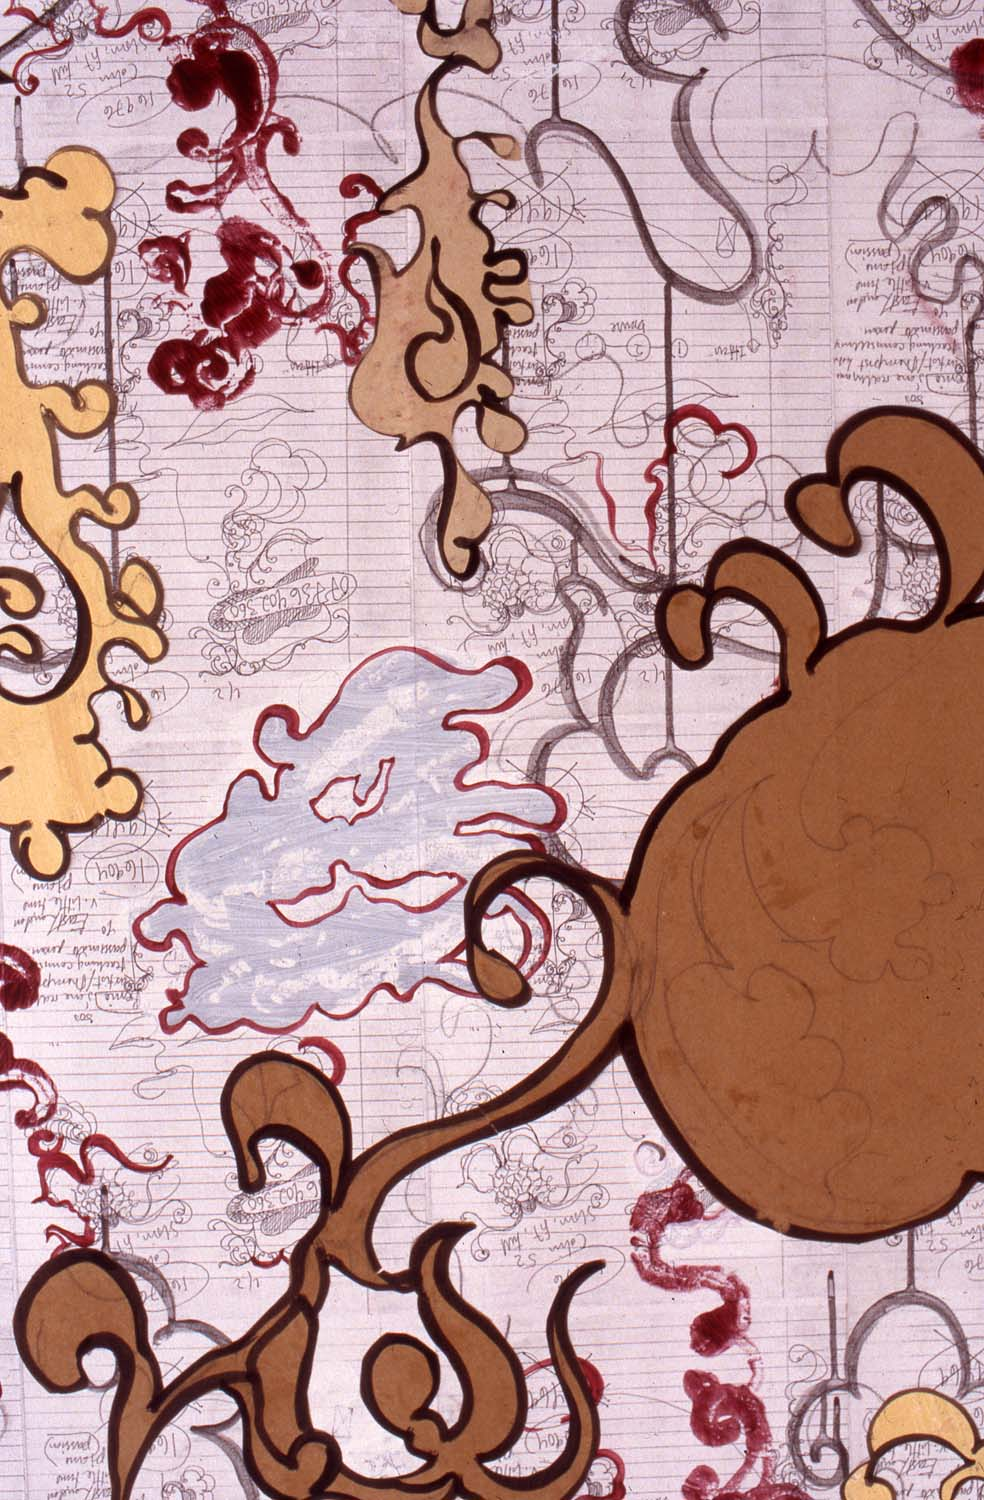 Detail from  v. little time,  2002  Xerox, acrylic, gesso and paper on canvas 152 x 198 cm